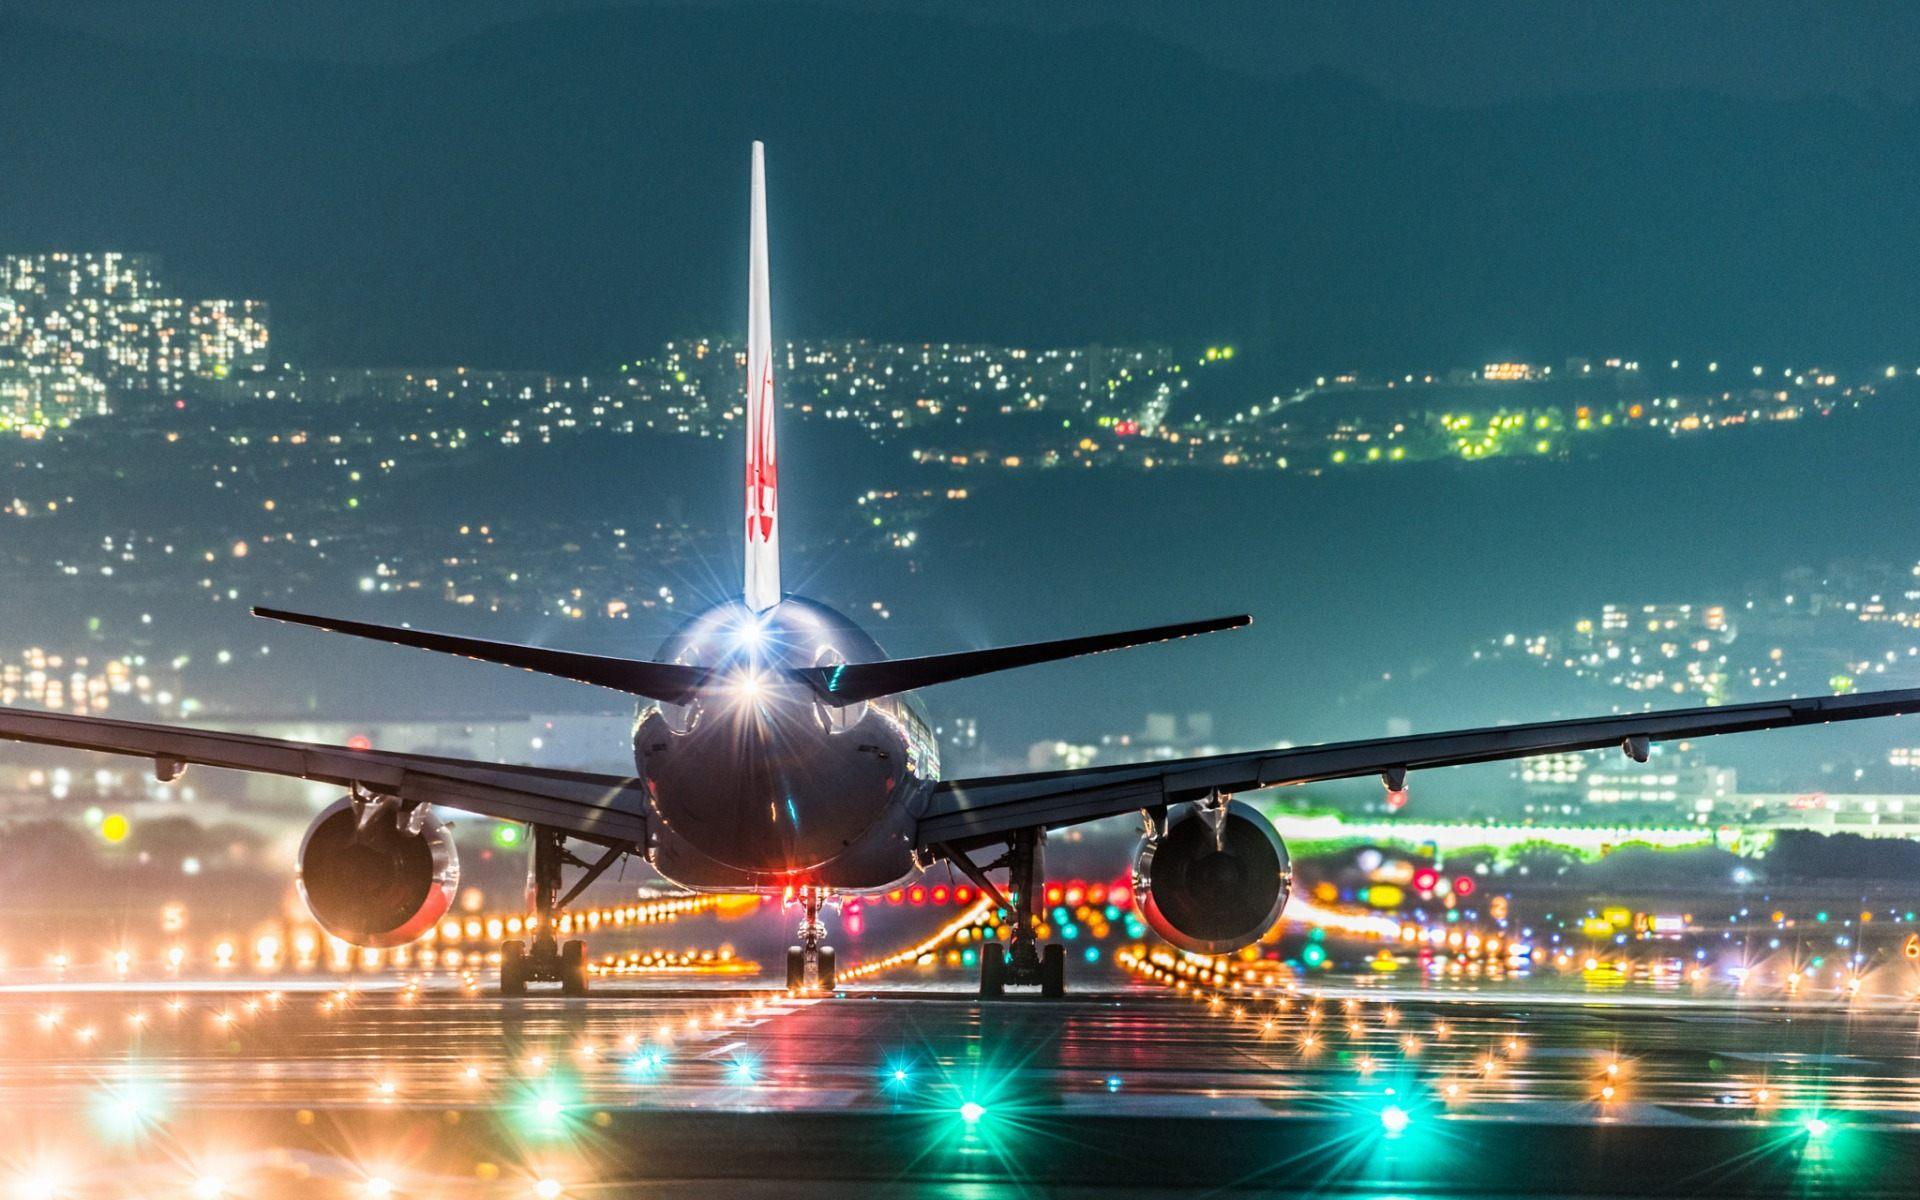 airport-night-1080p-wallpapers